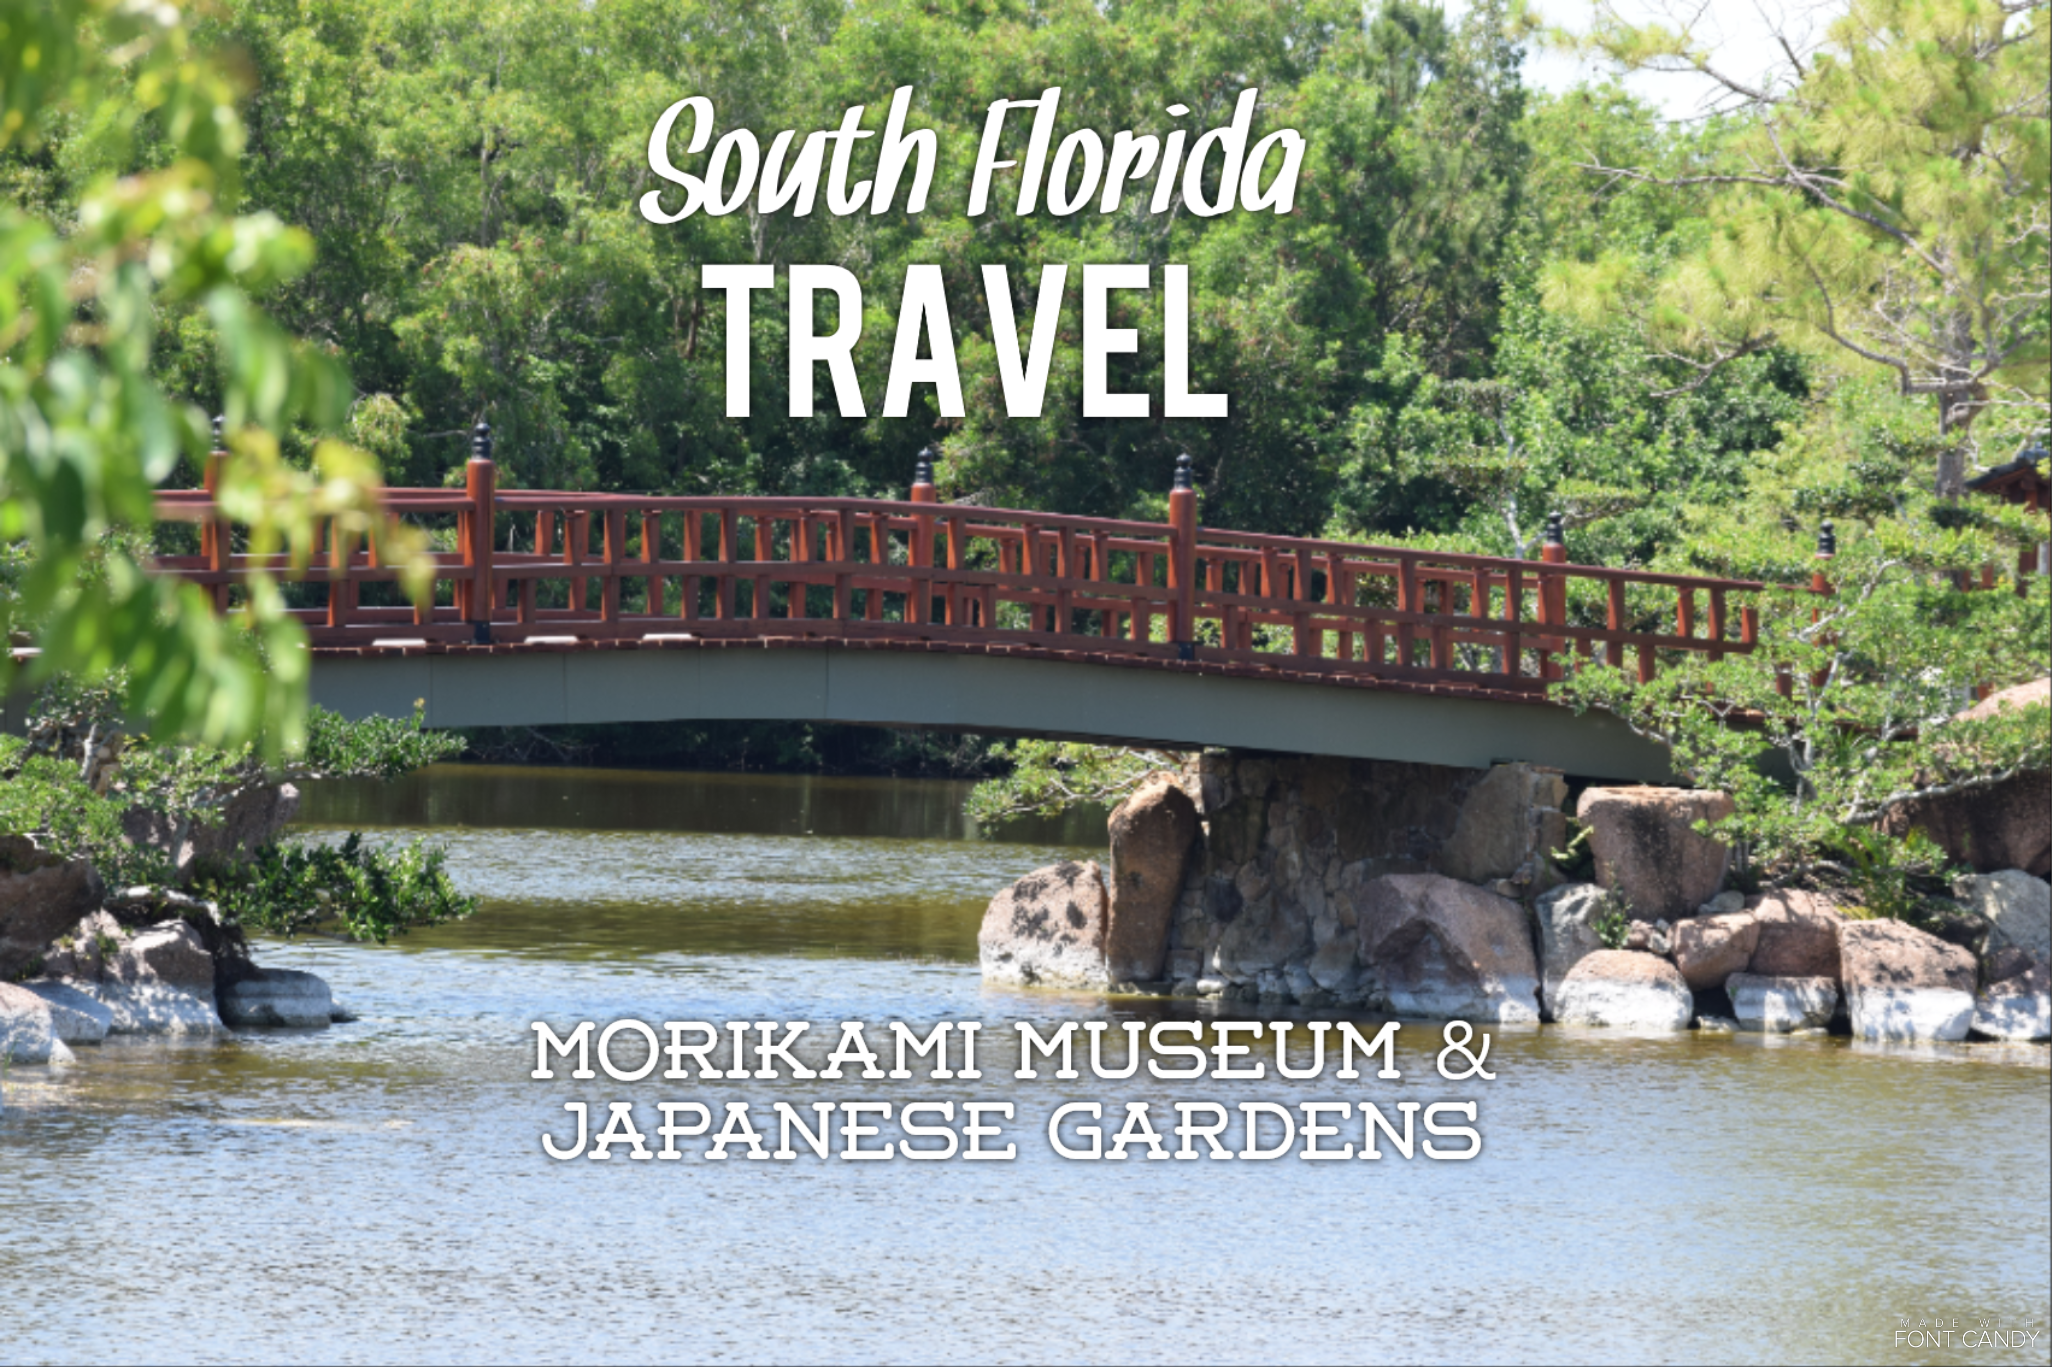 South Florida Travel:  Morikami Museum & Japanese Gardens